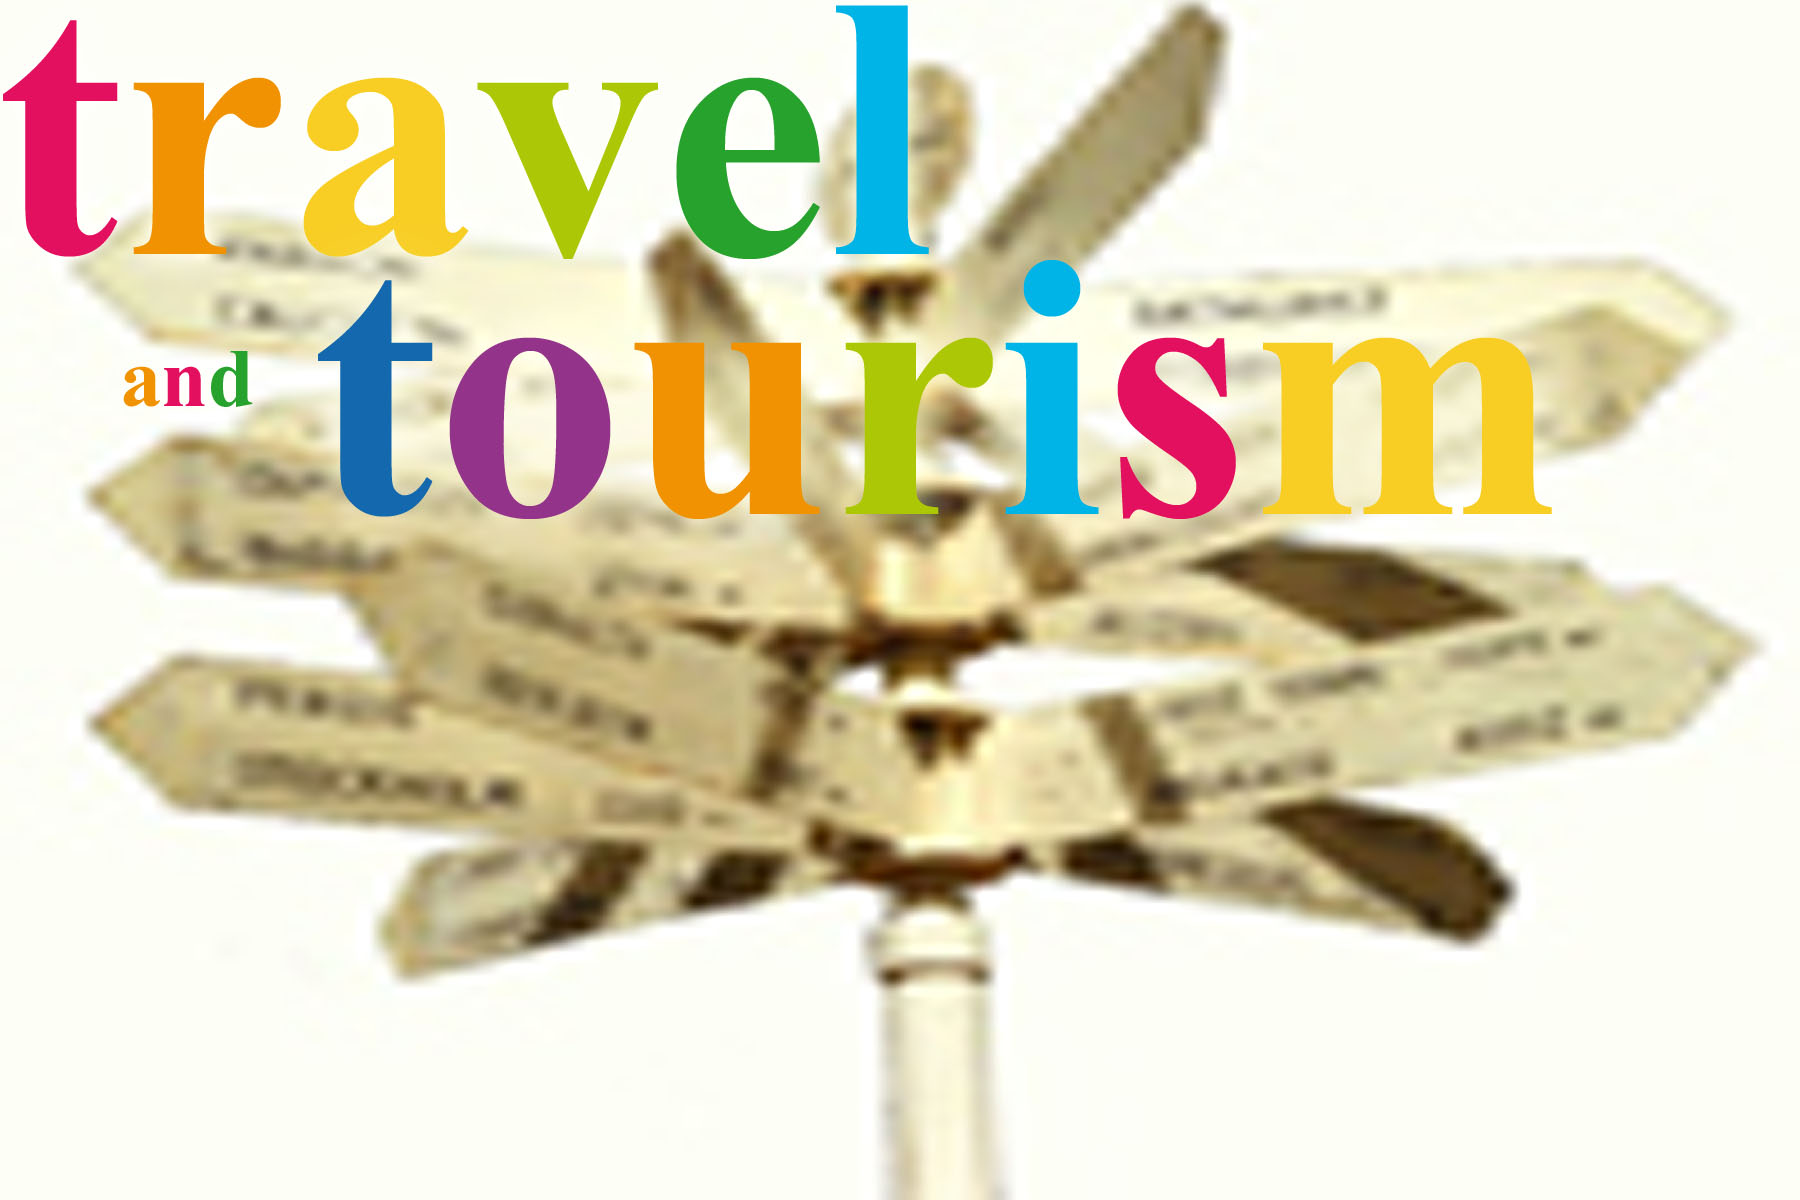 unit 6 issue travel tourism assignment hnd help